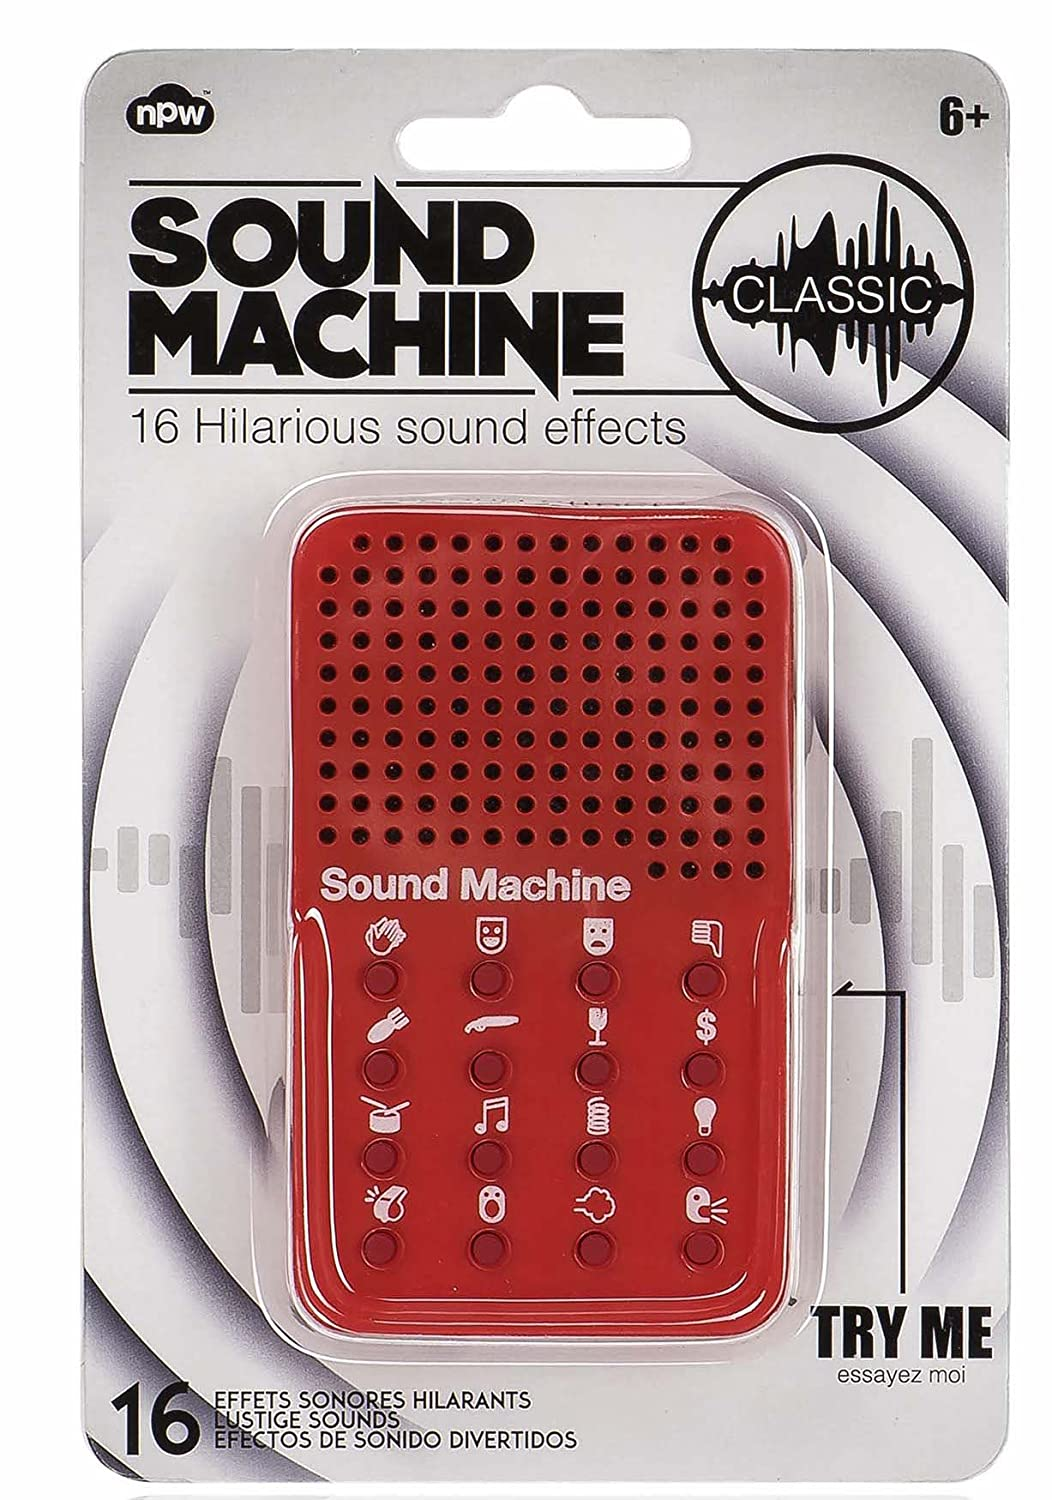 NPW-USA Sound Machine, 16 Hilarious Sound Effects